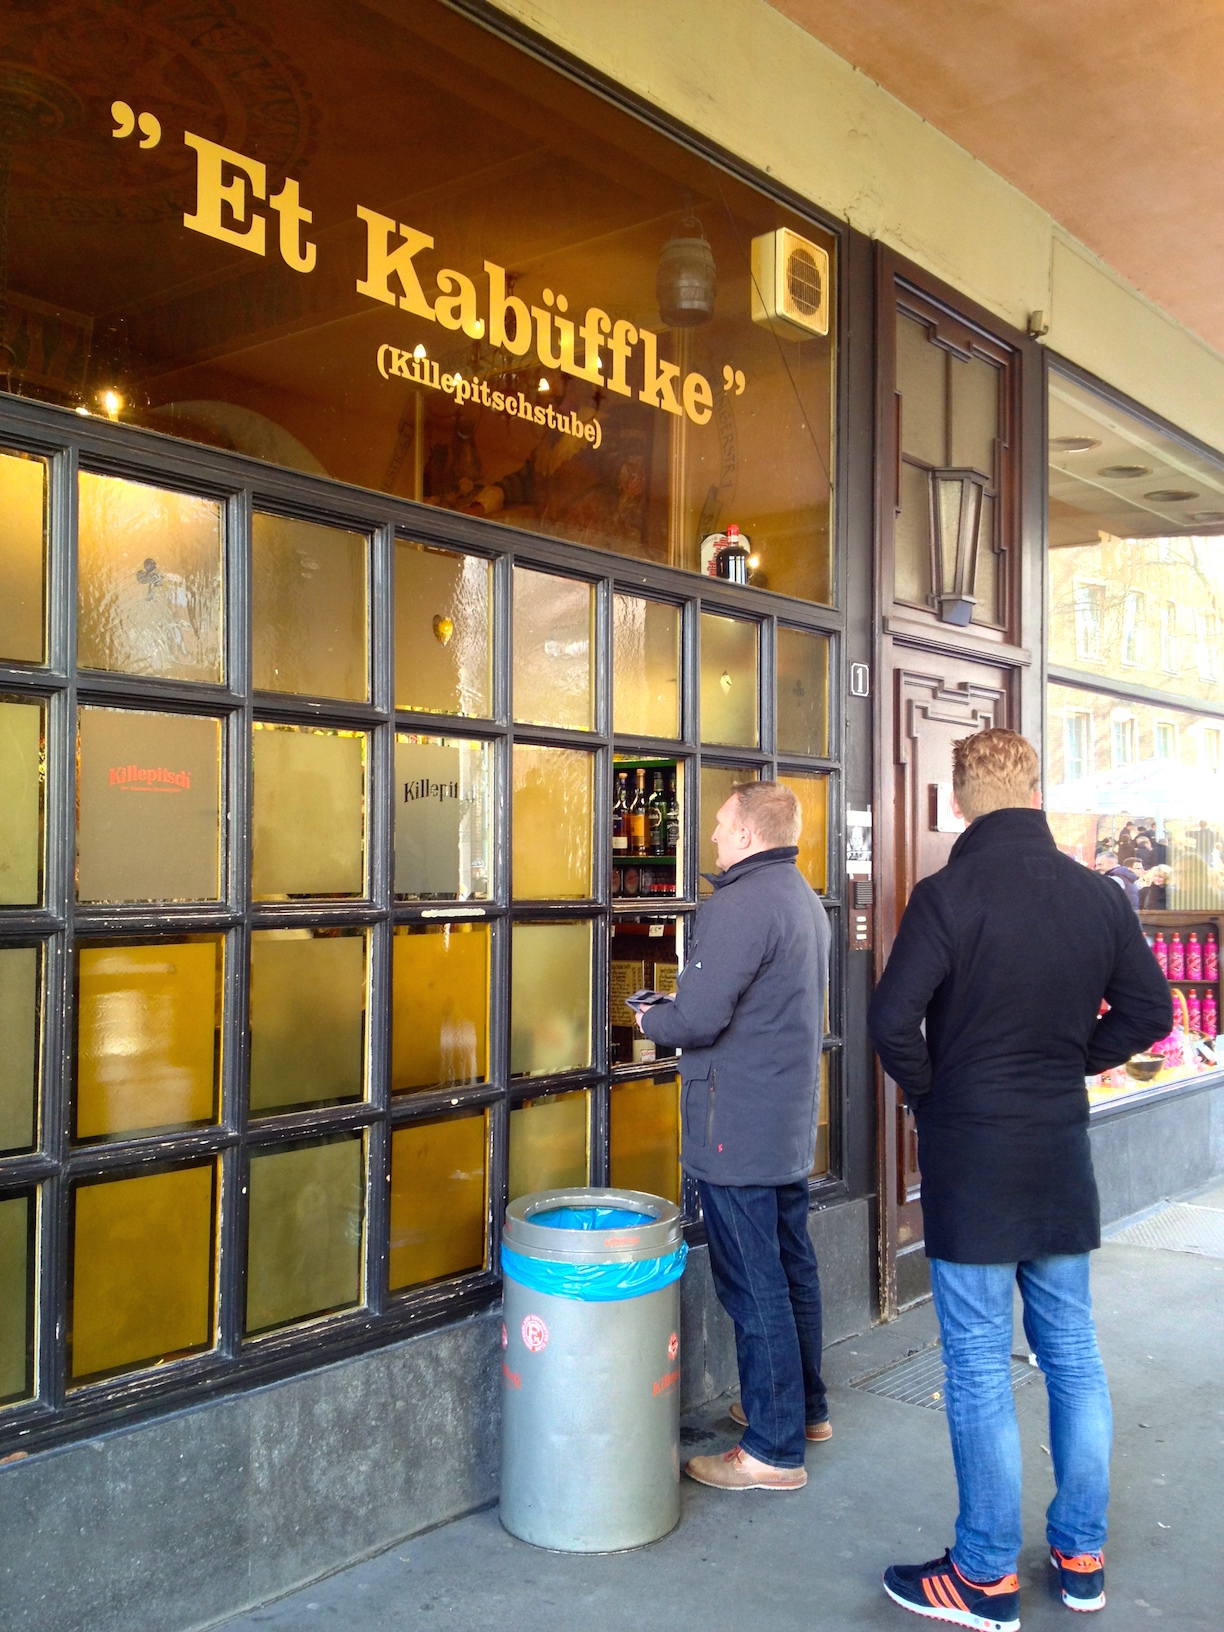 Customers waiting at a Killepitschstube in the Altstadt